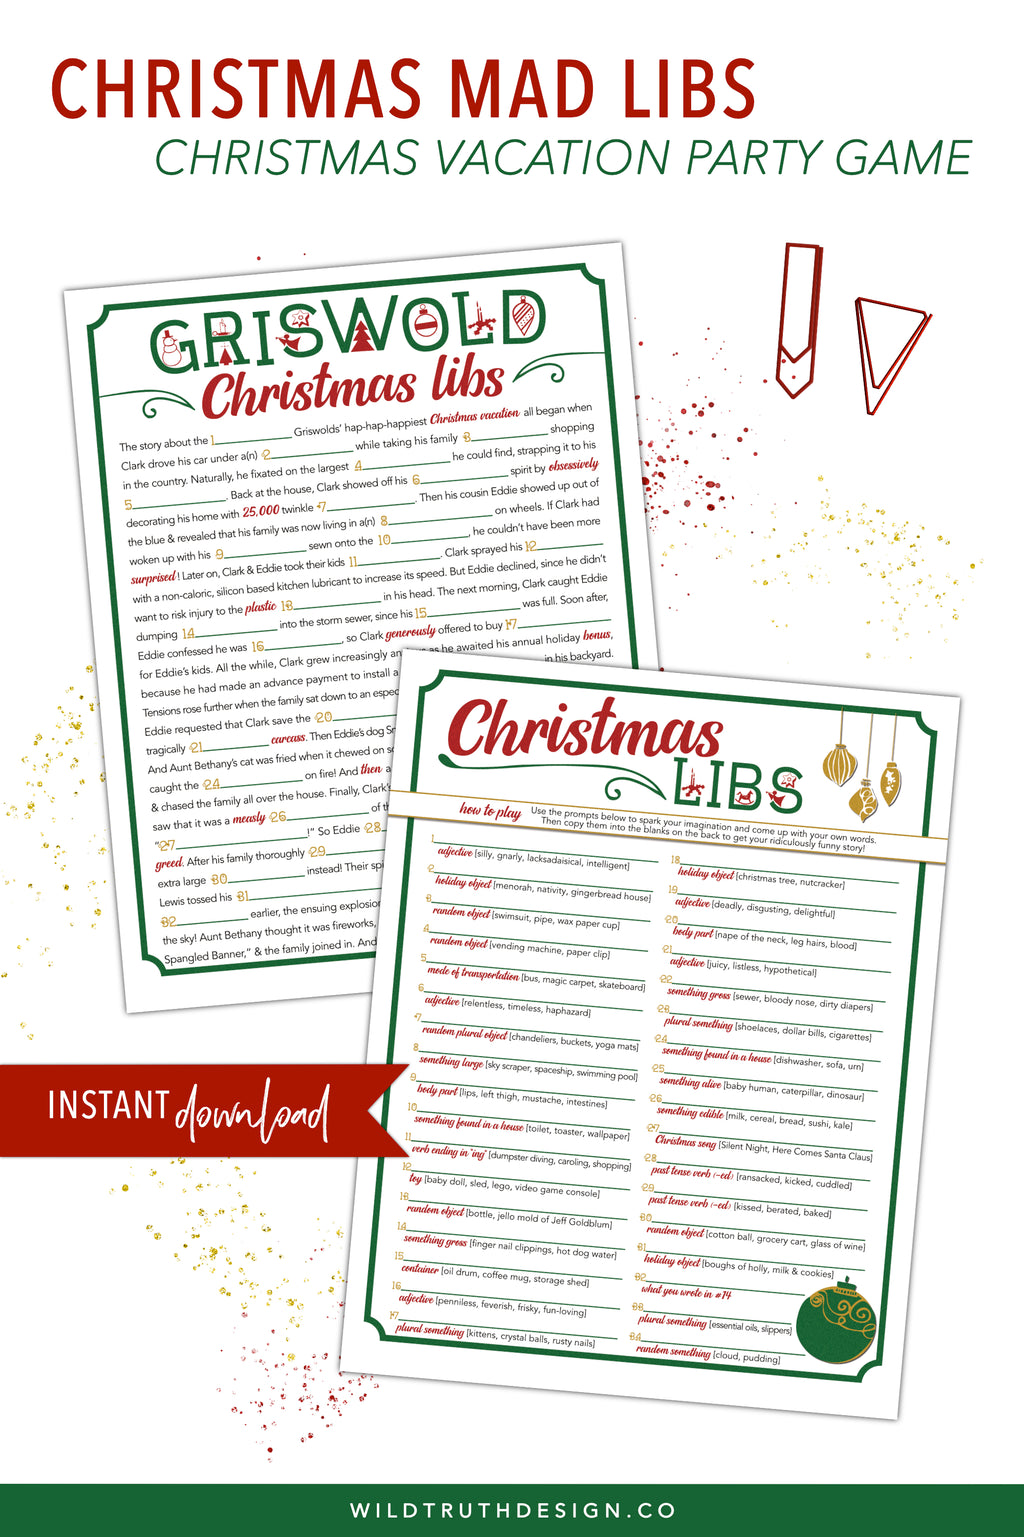 Christmas Mad Libs - Christmas Vacation Party Game